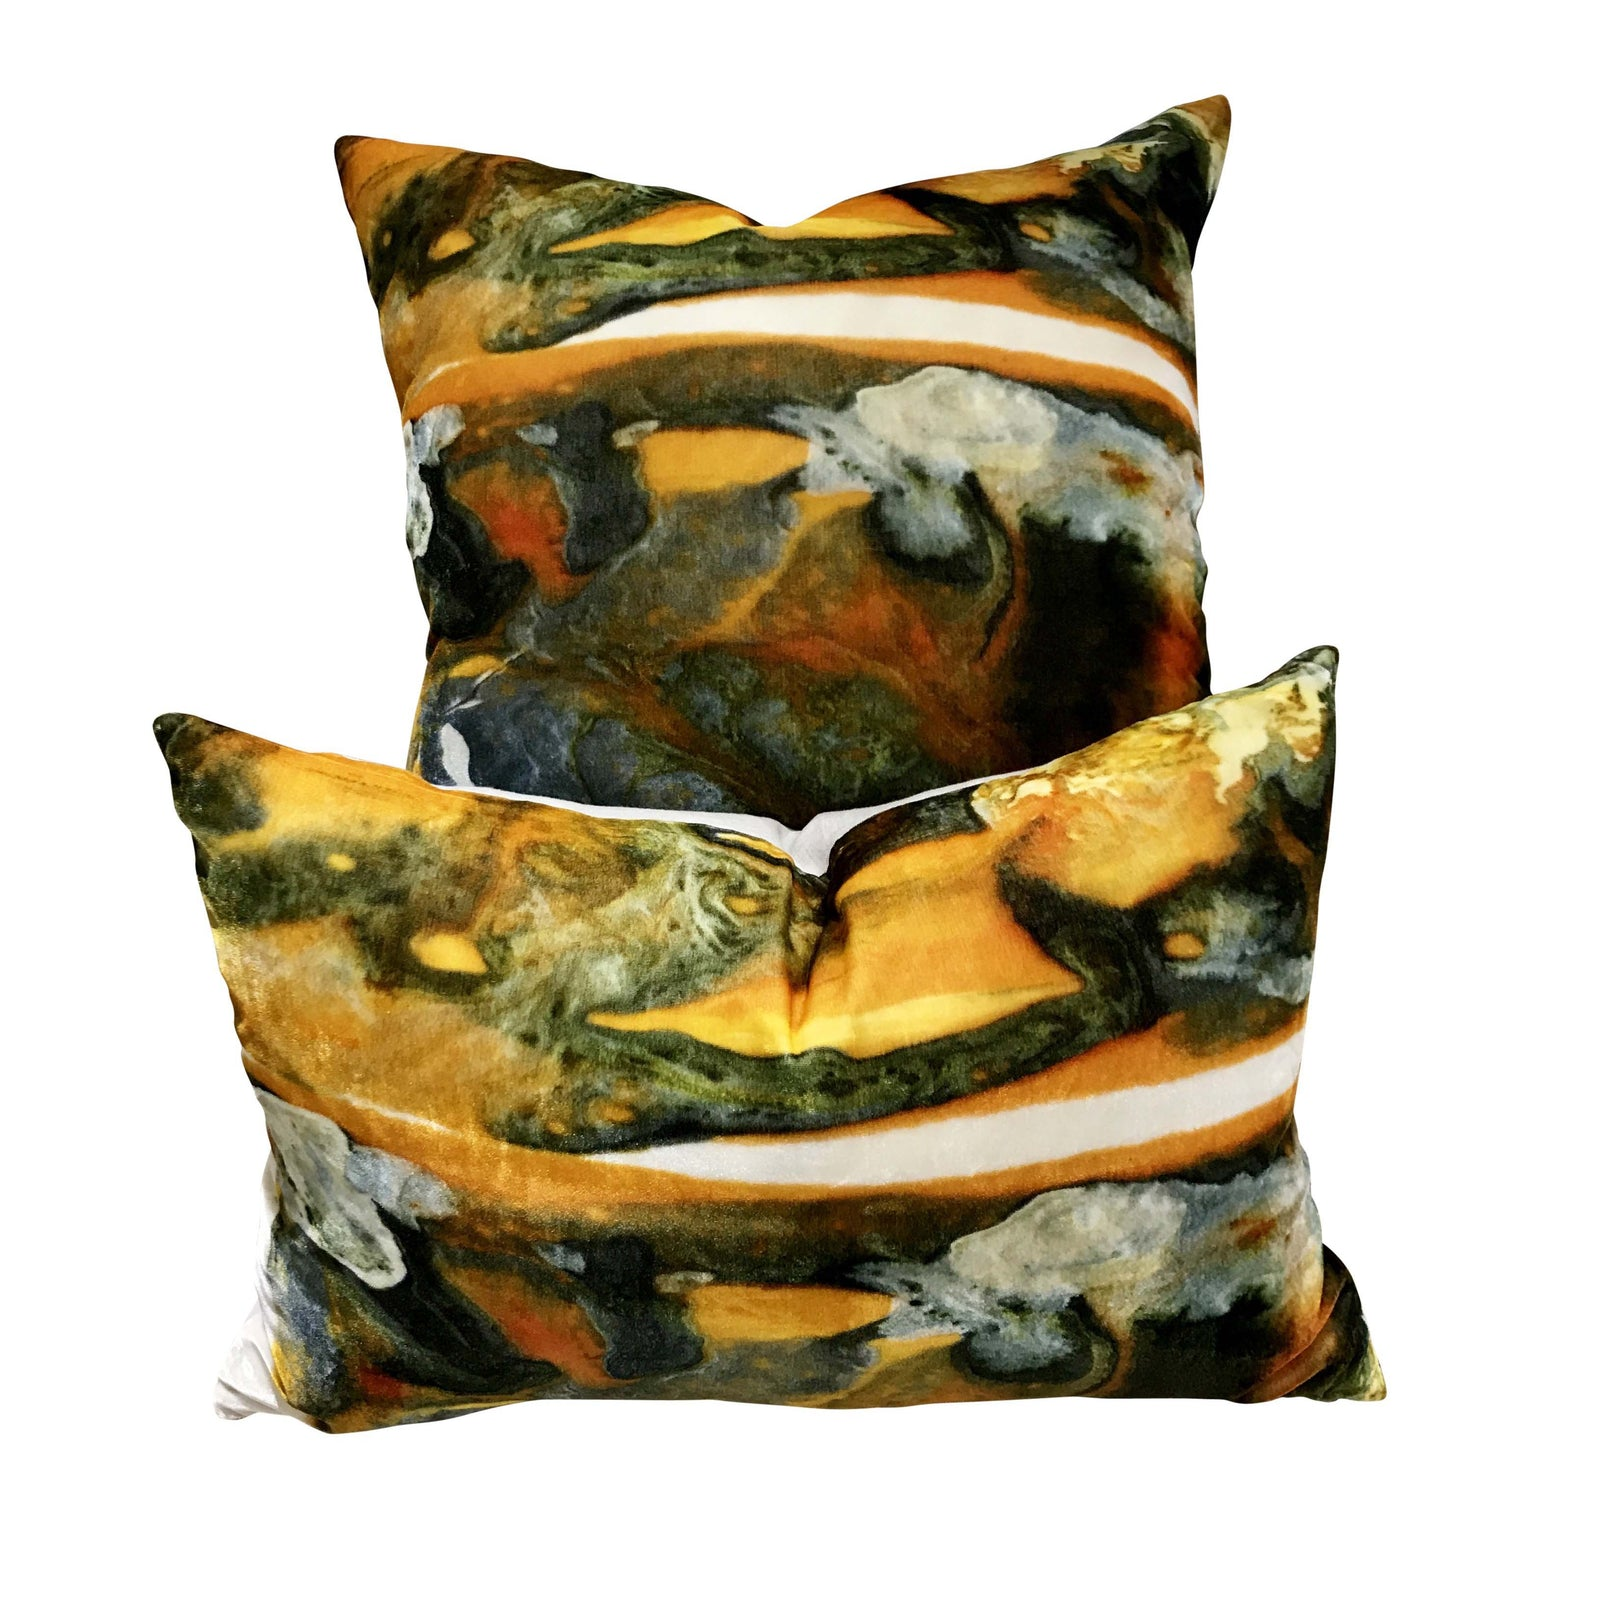 Hobbs & Co Cushion Covers - Mustard